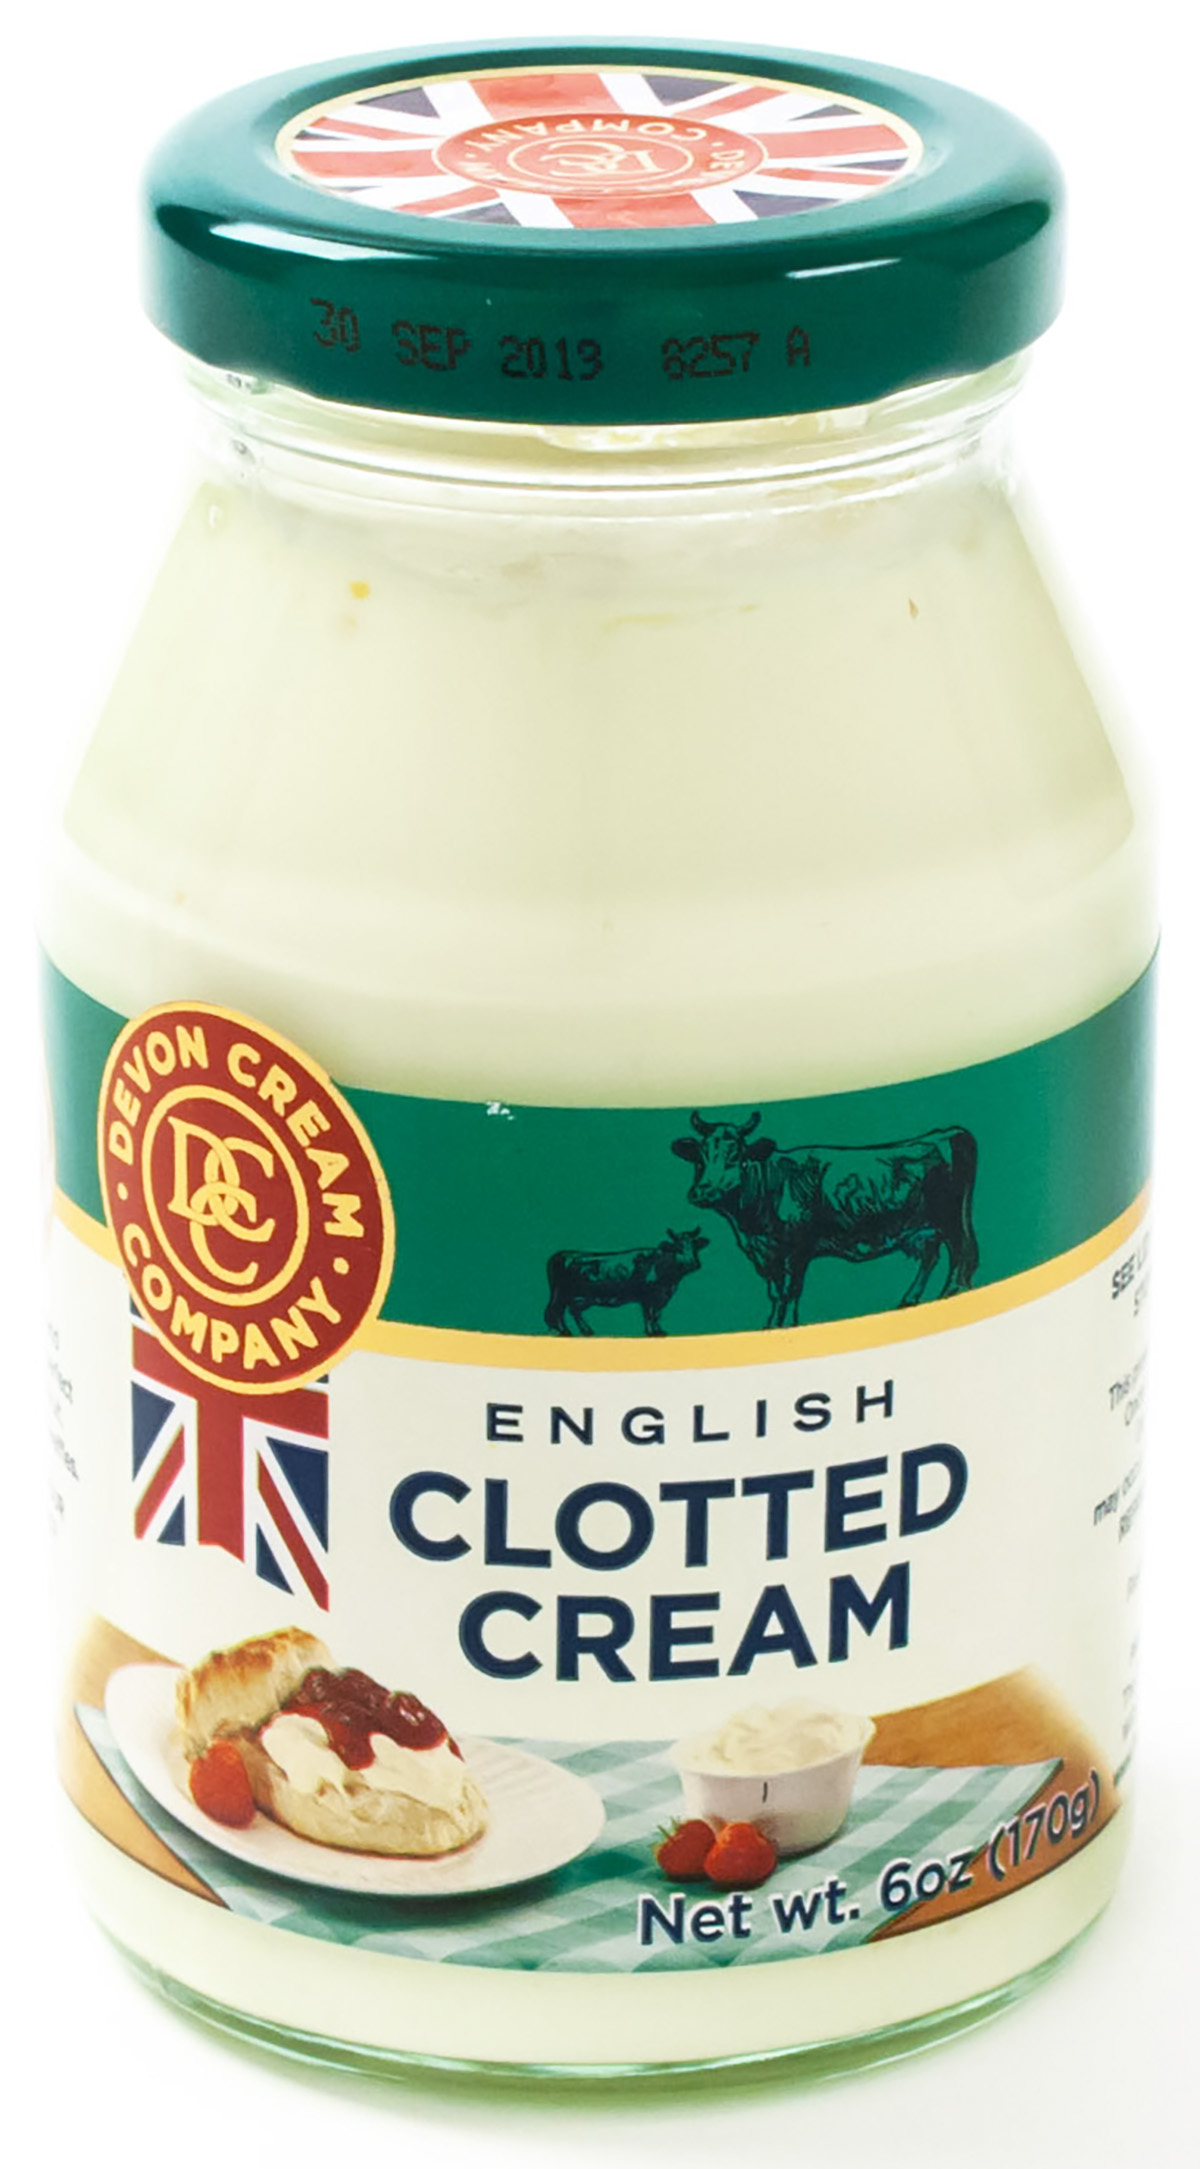 Cream Clotted 55 Butterfat Pasteurized Dairy Glass Jar Ref Imported England 12 6 Oz Food Innovations